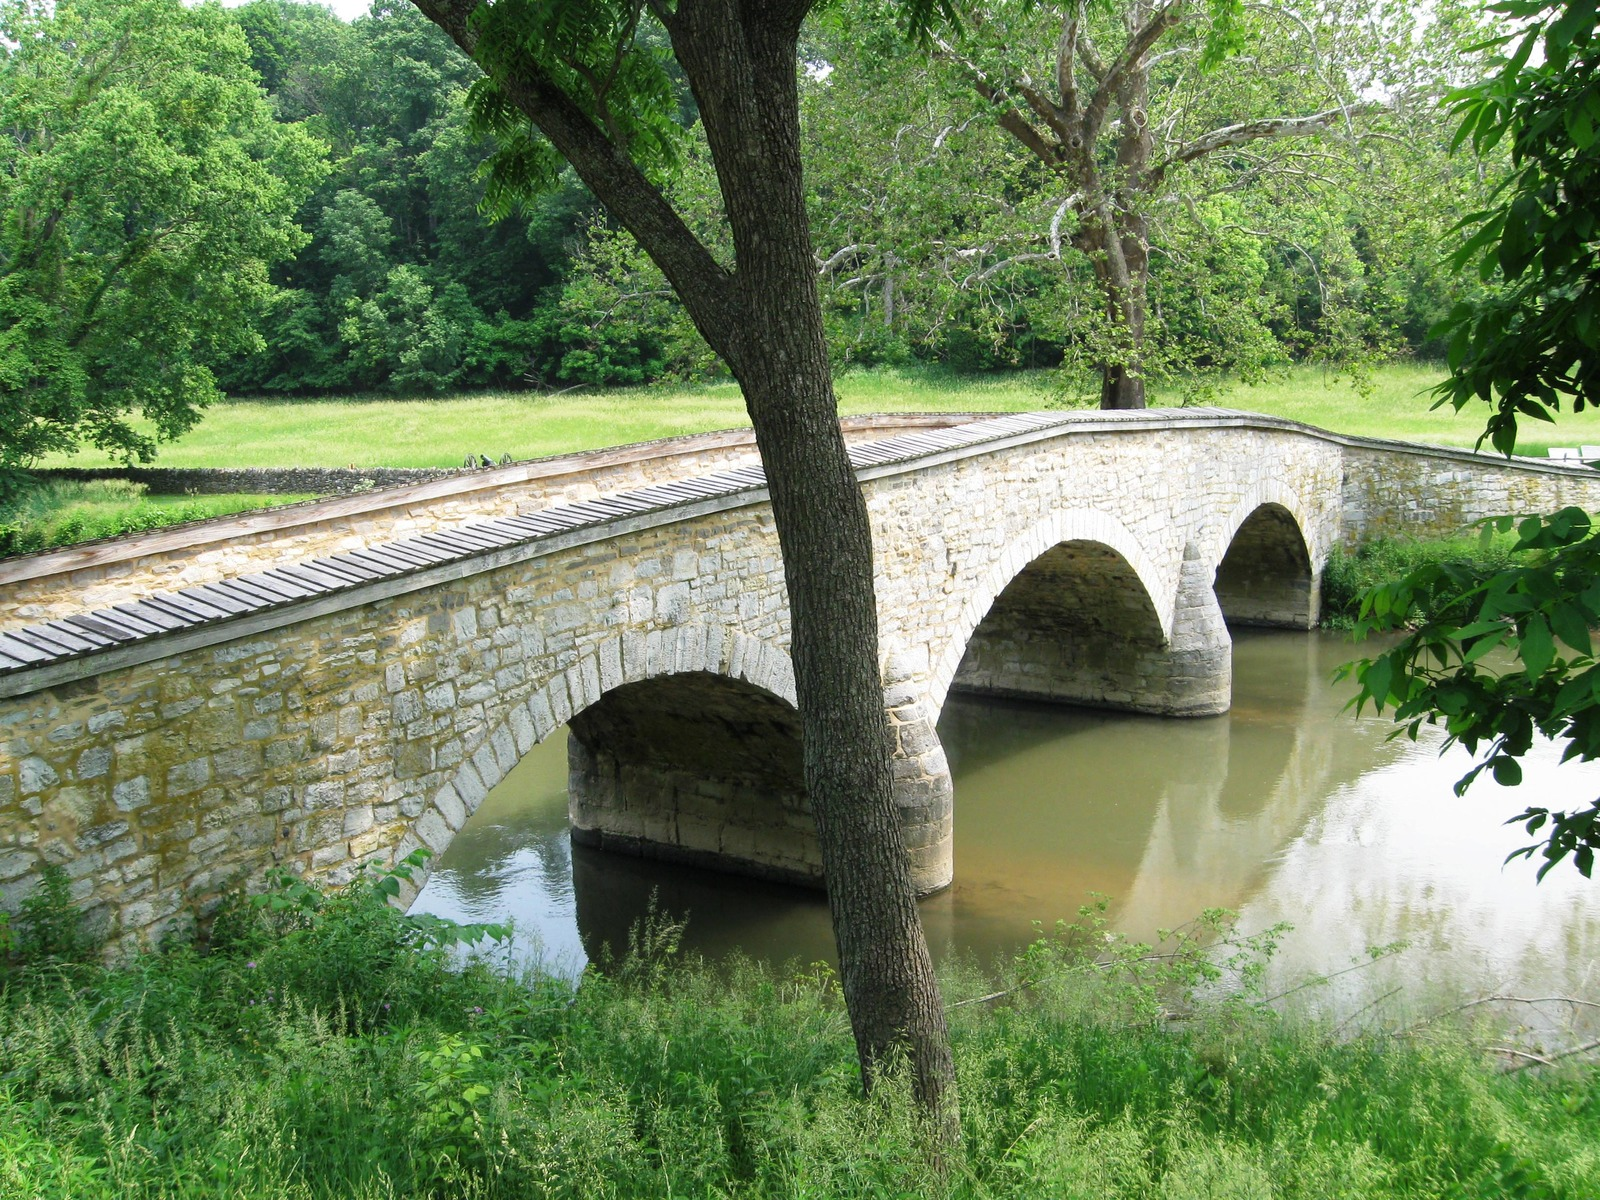 York civilians watched the battle of Antietam